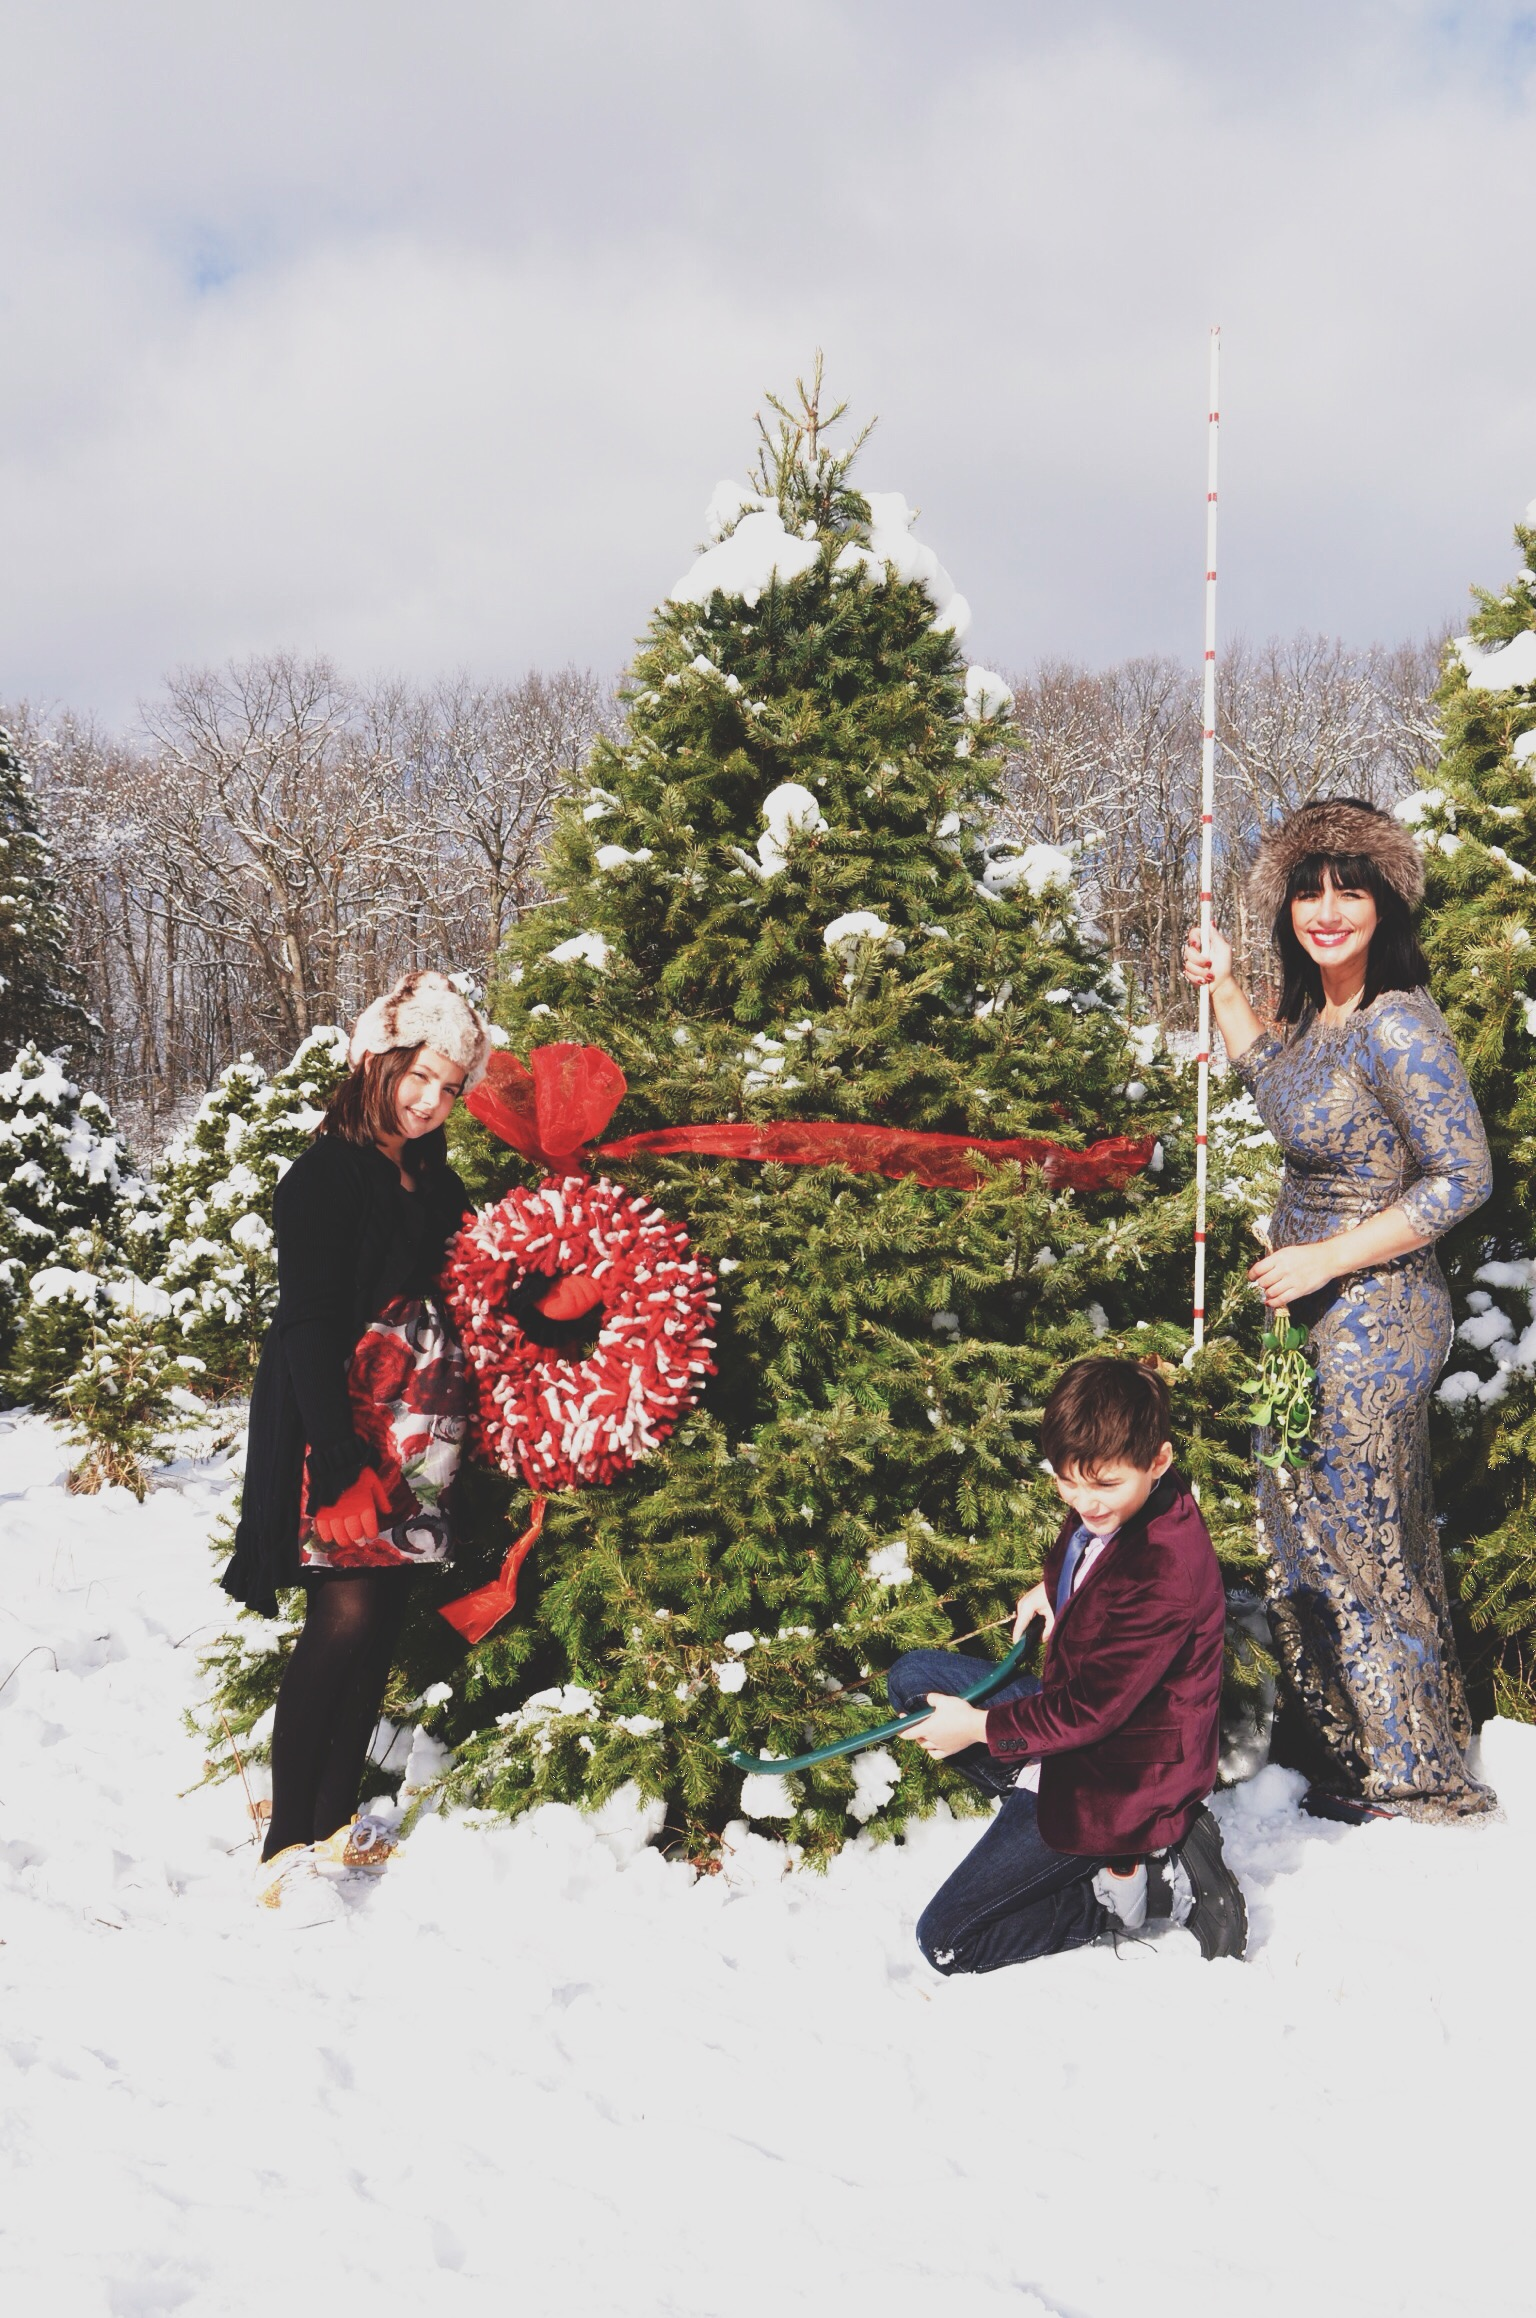 The Christmas Tree Harvest A Perfect Opportunity For A Holiday Card Photo Shoot Bacon Lox Society